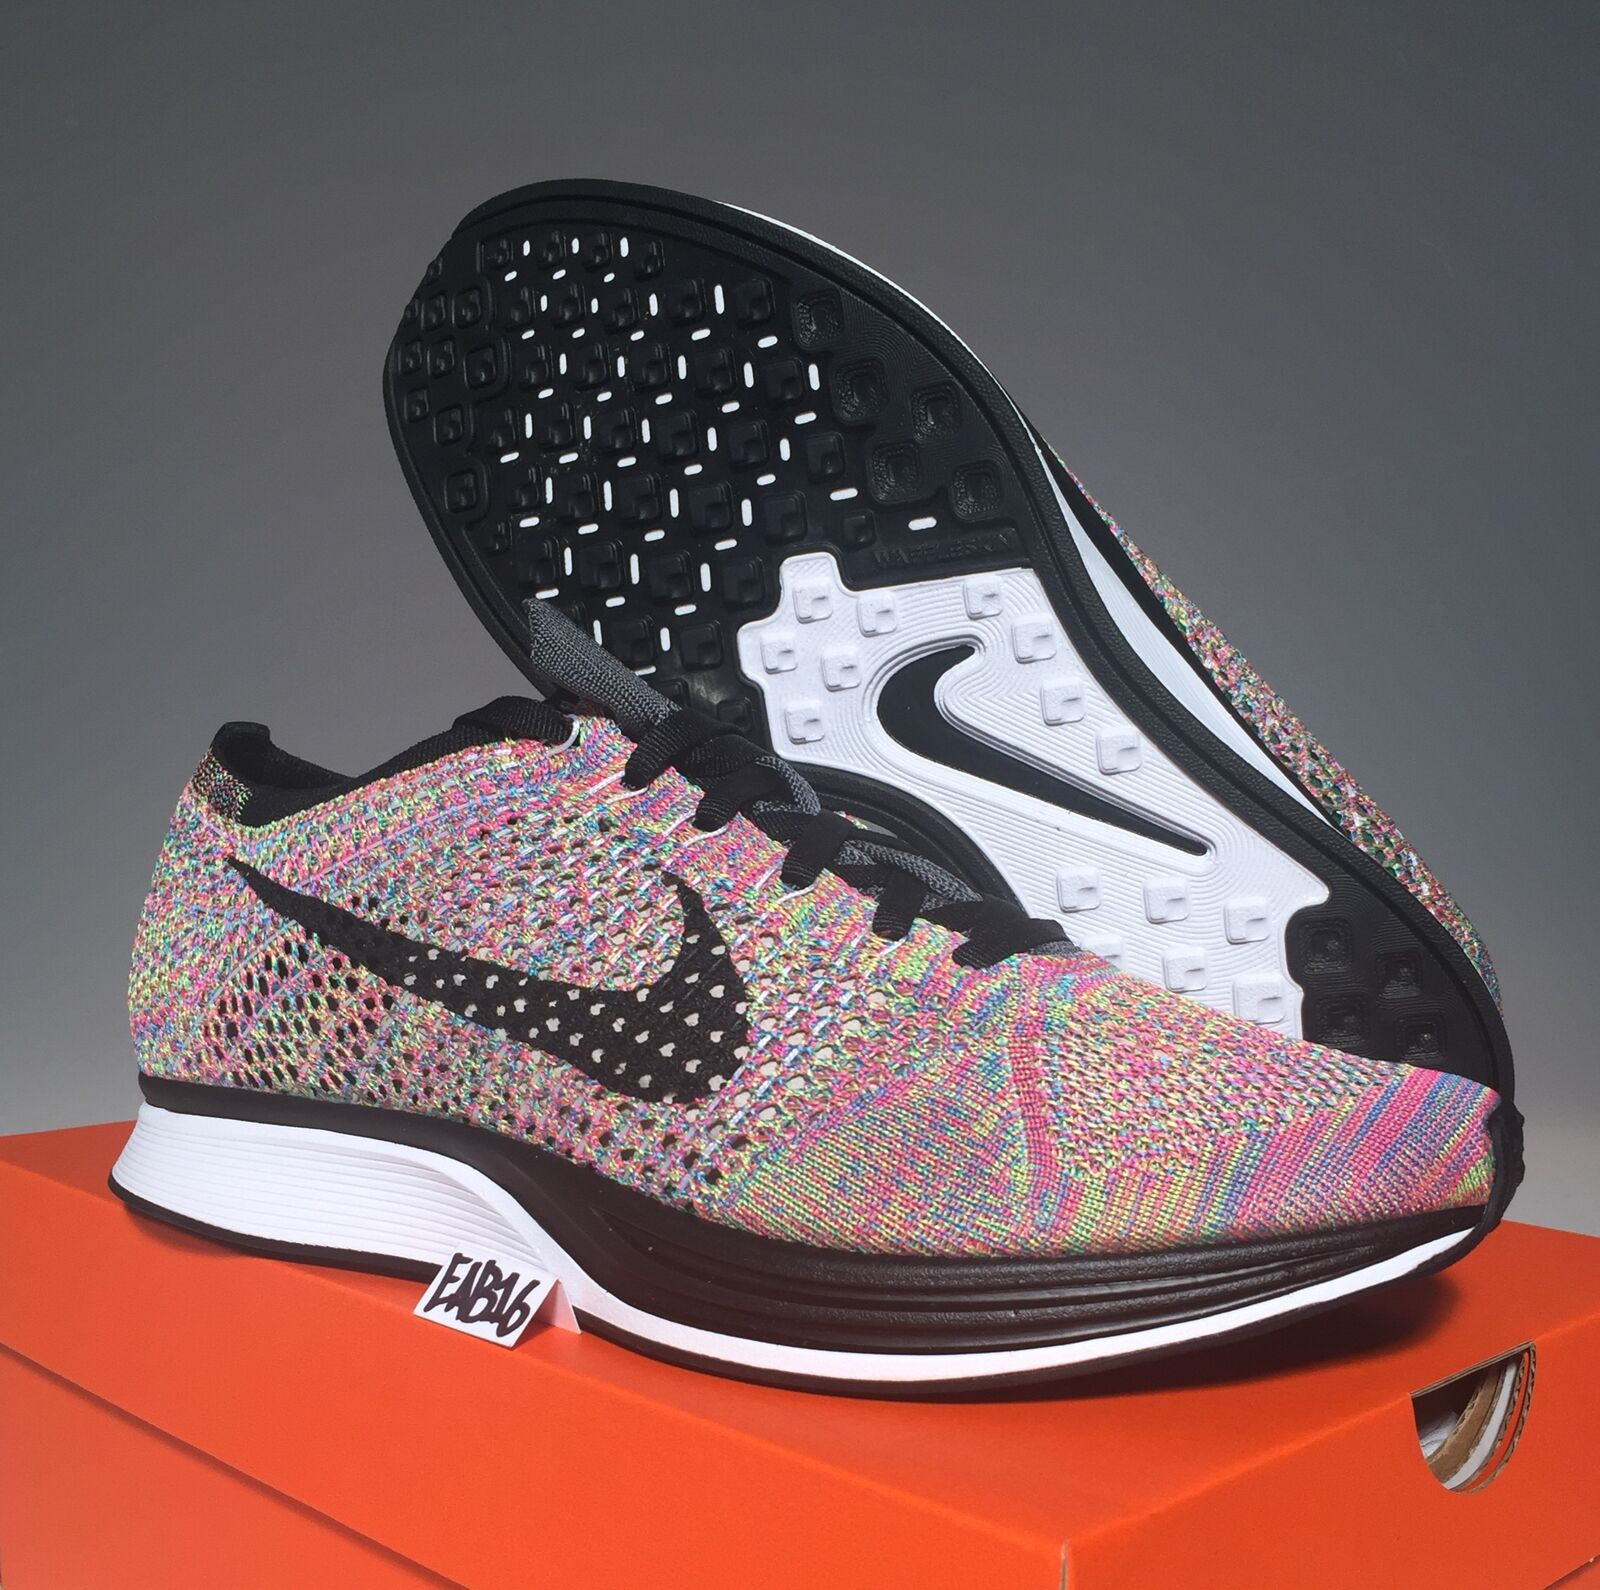 Nike Flyknit Racer Rainbow 3.0 Size Multi Color 526628 004 Grey Tongue Fly Knit